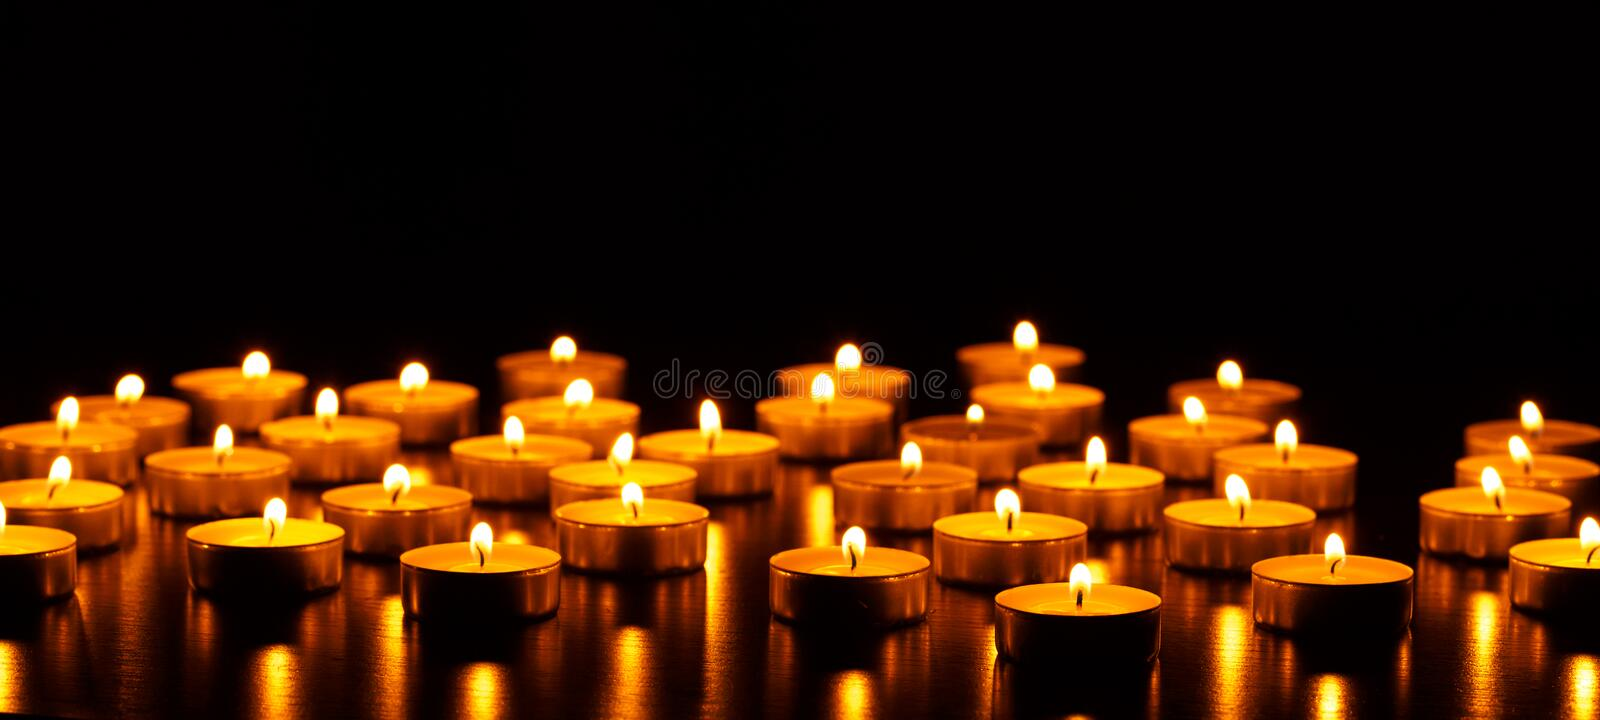 Many burning candles with shallow depth of field stock photos